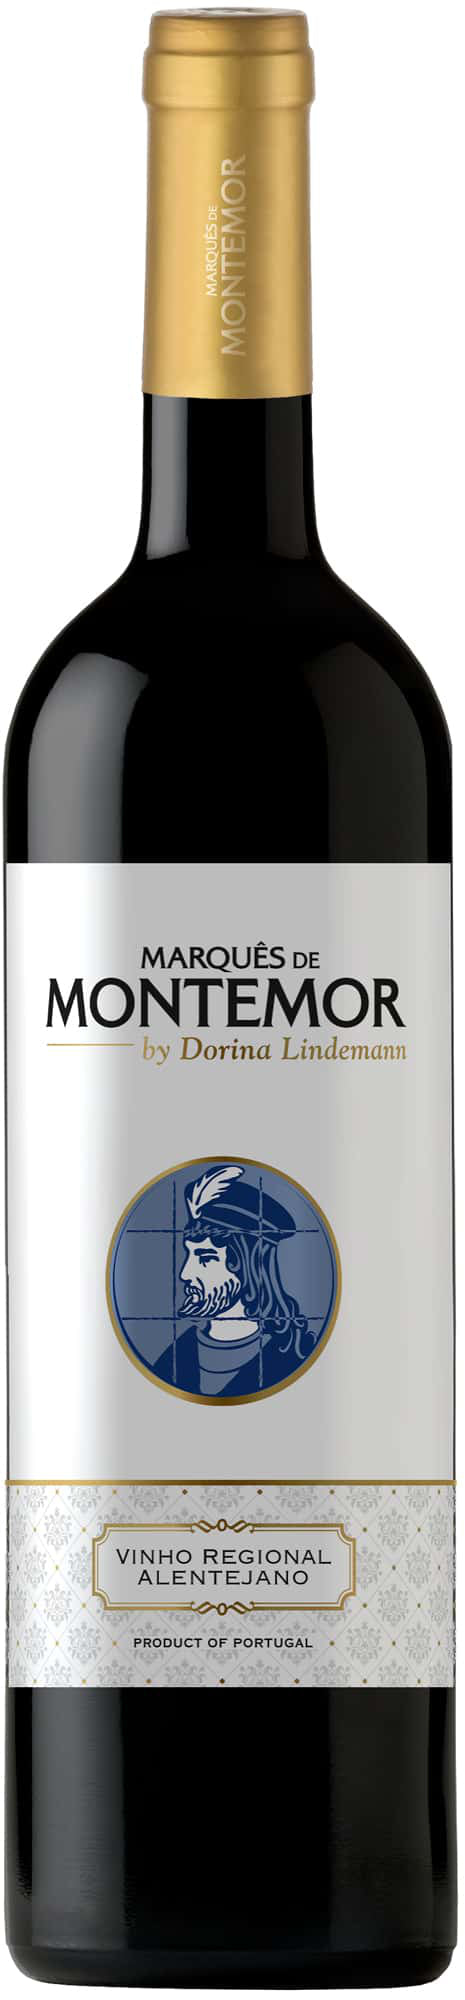 Marques de Montemor Tinto